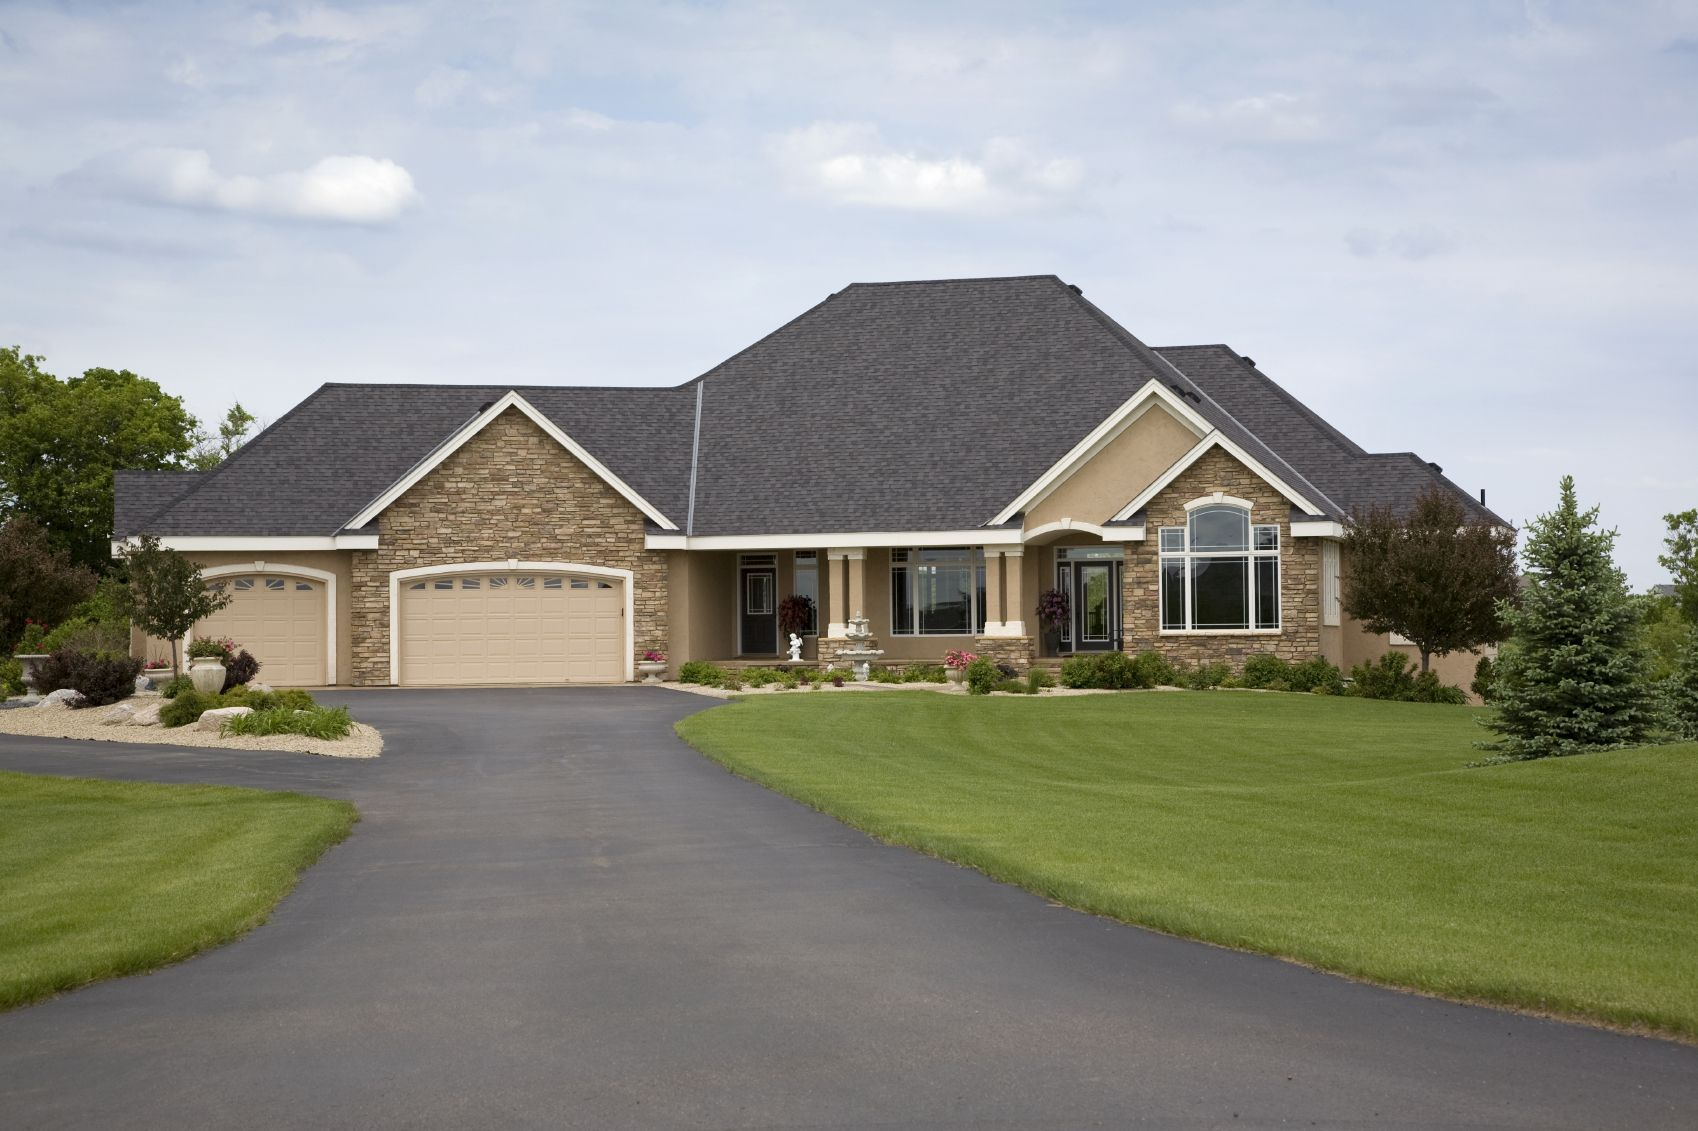 Homes Starting At $110,000 On